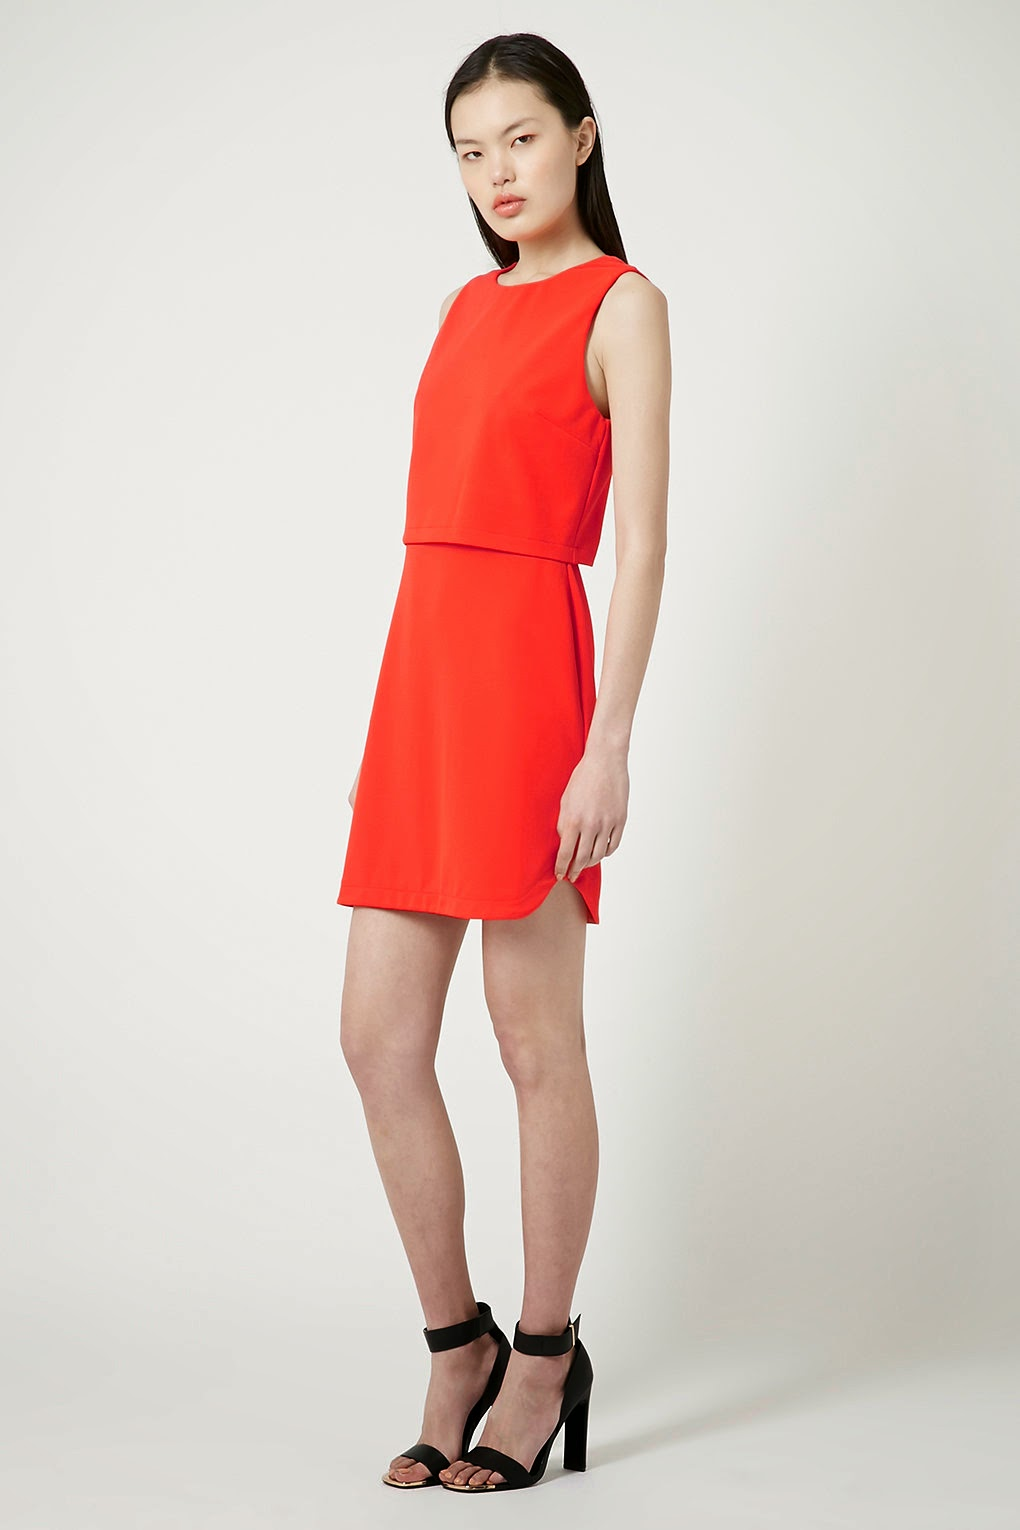 topshop red layer dress